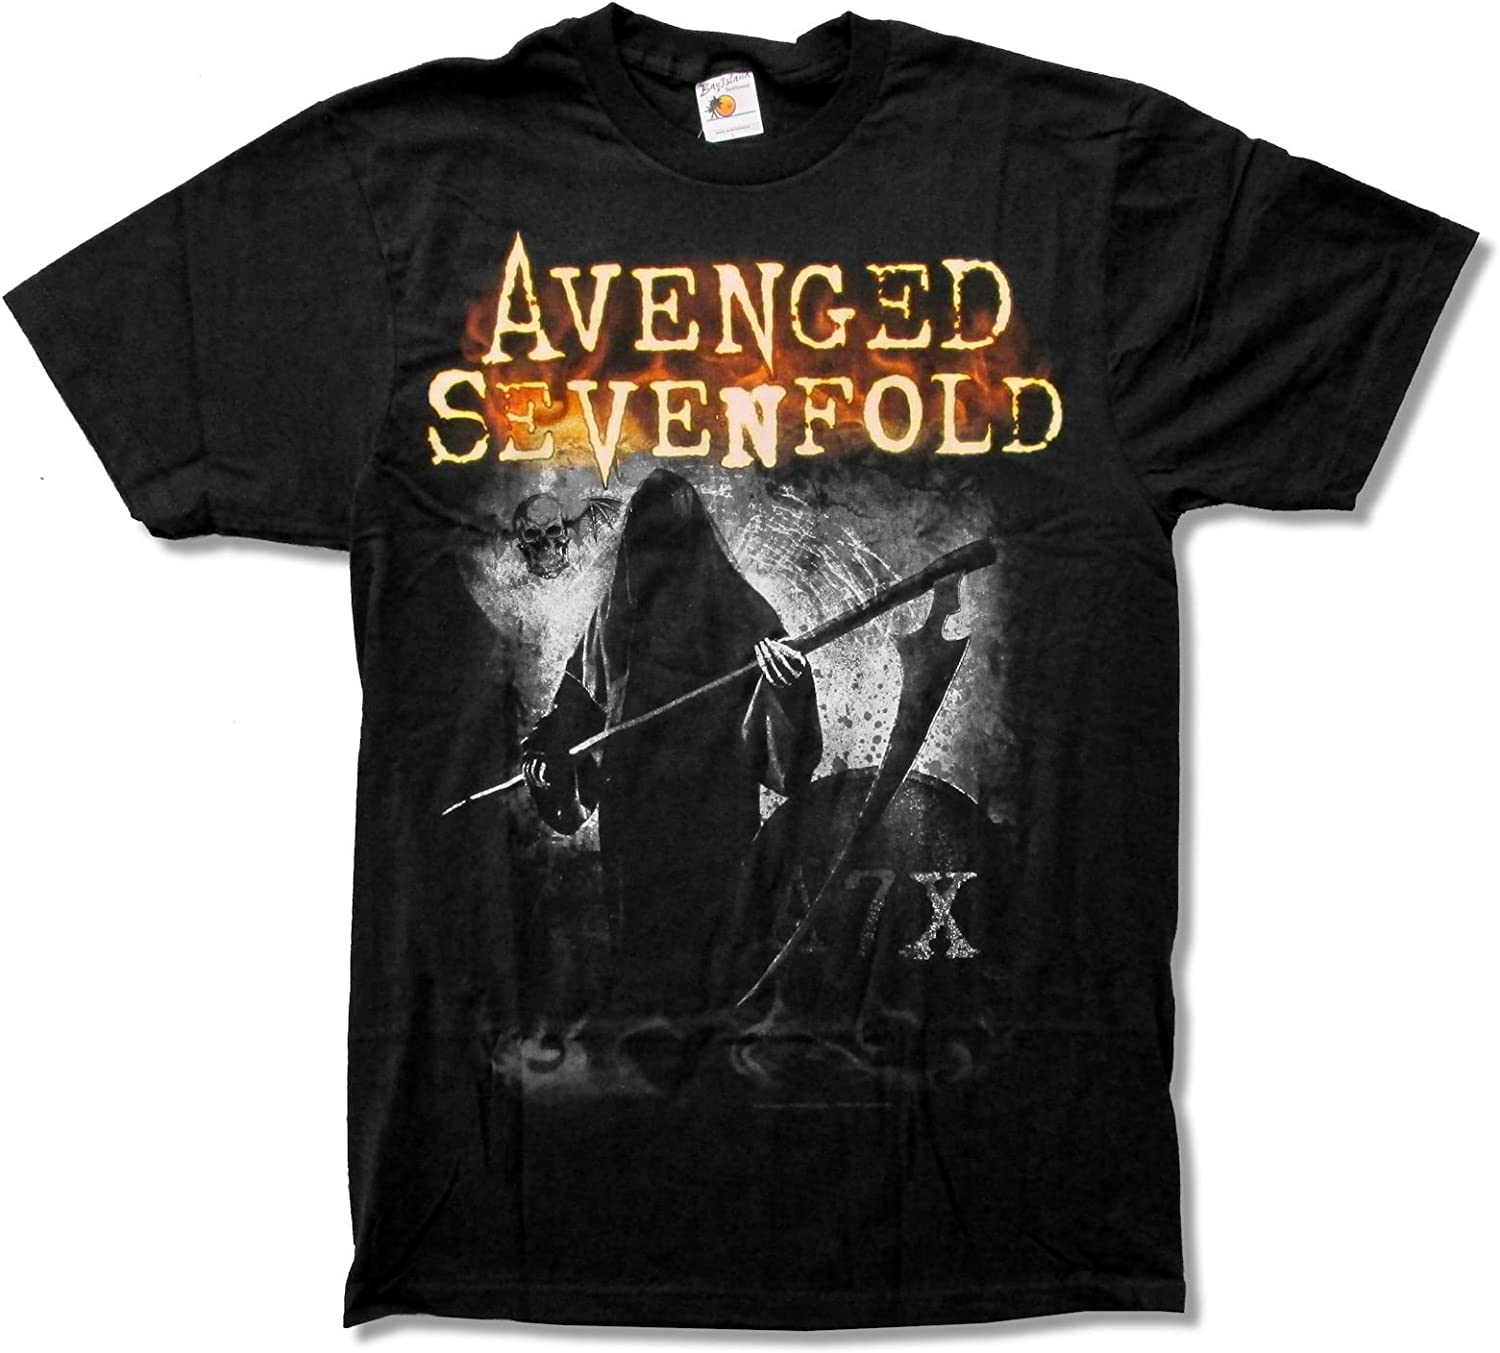 Youth T Shirt New Official Avenged Sevenfold Reaper Kids